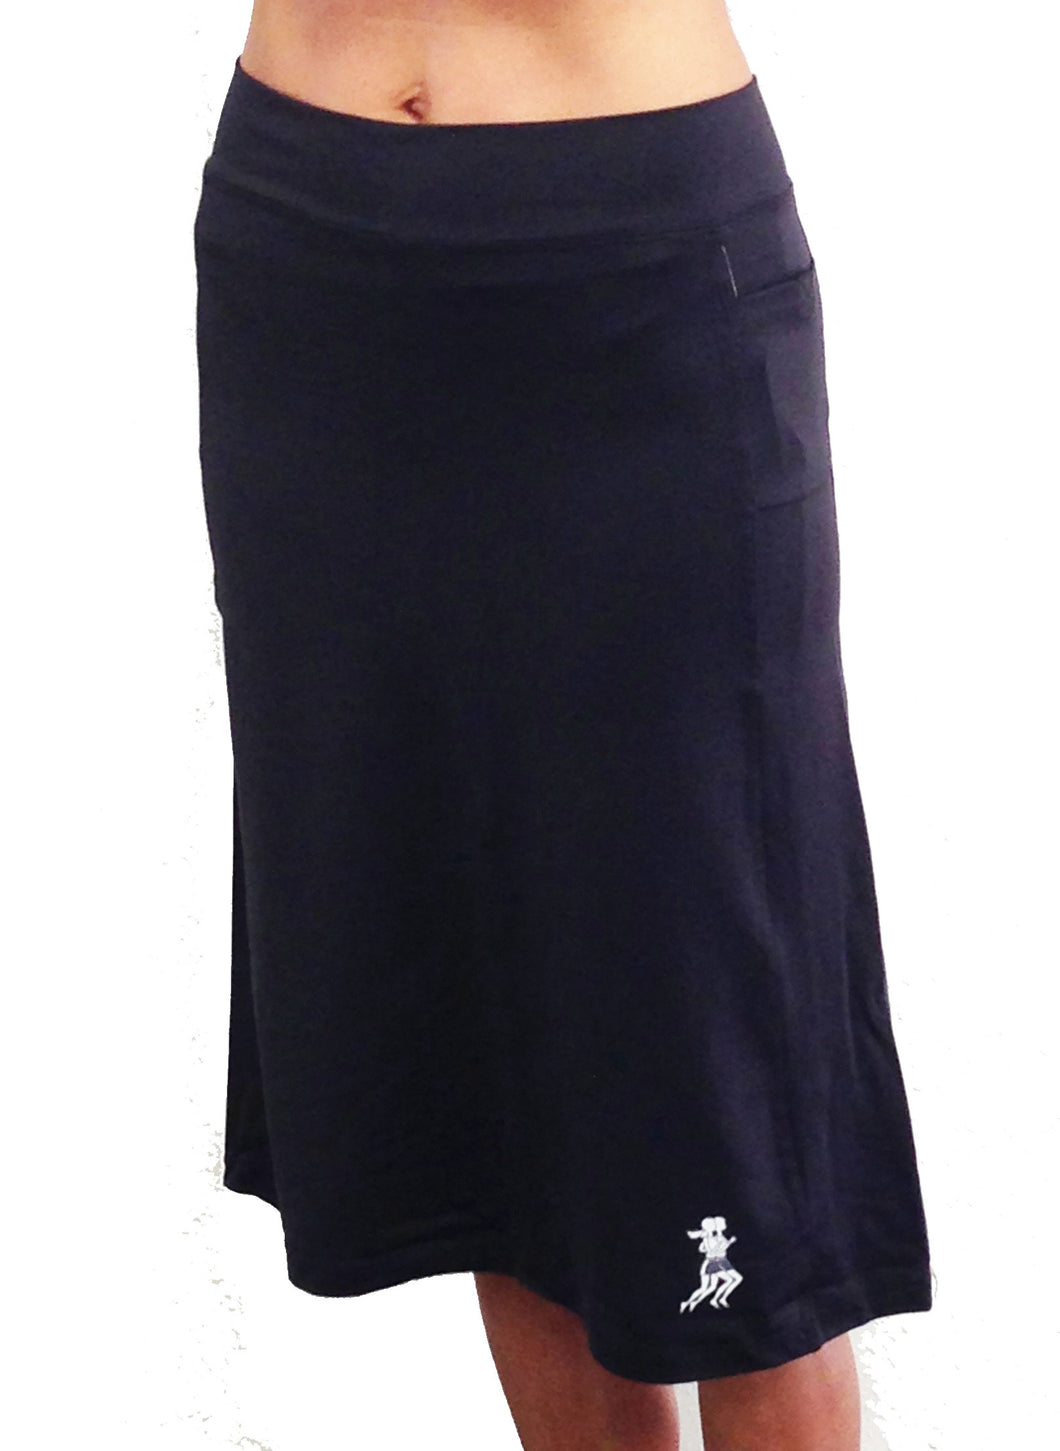 black knee length running skirt